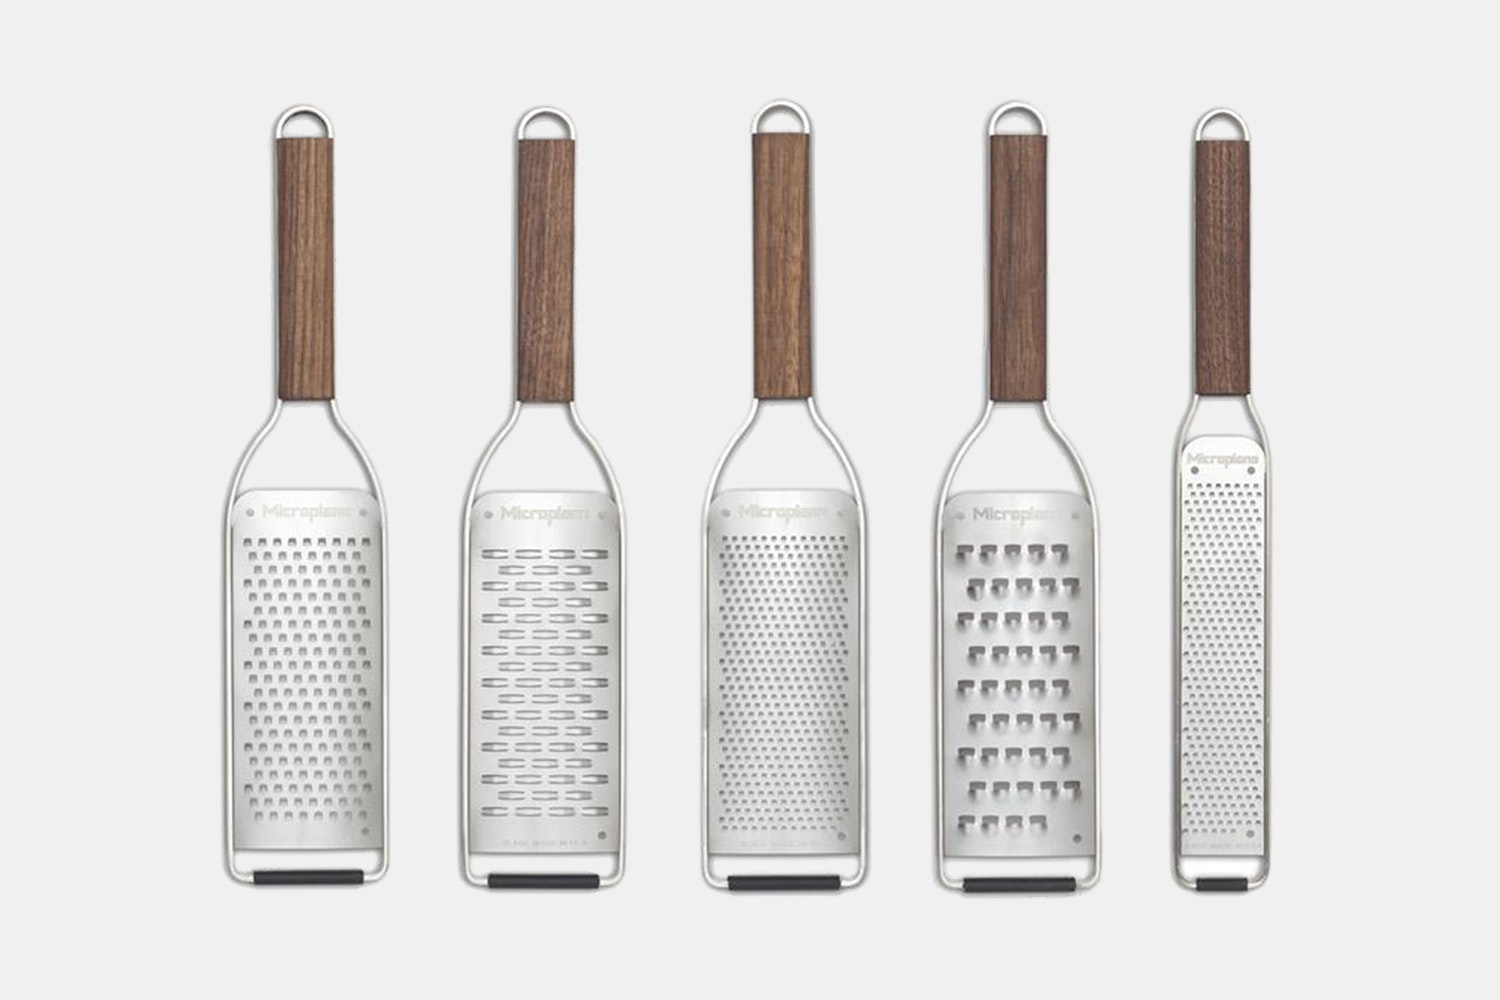 Microplane Master Series Graters